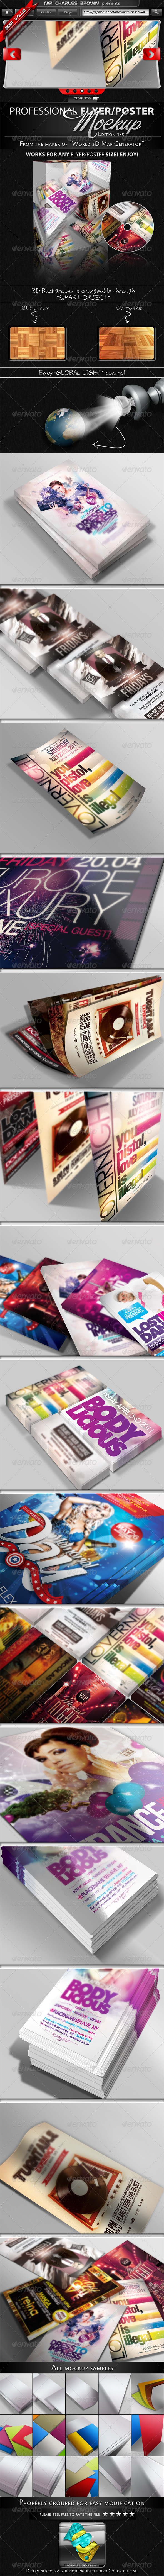 Flyer & Poster Mockup Bundle 1-3 - Flyers Print